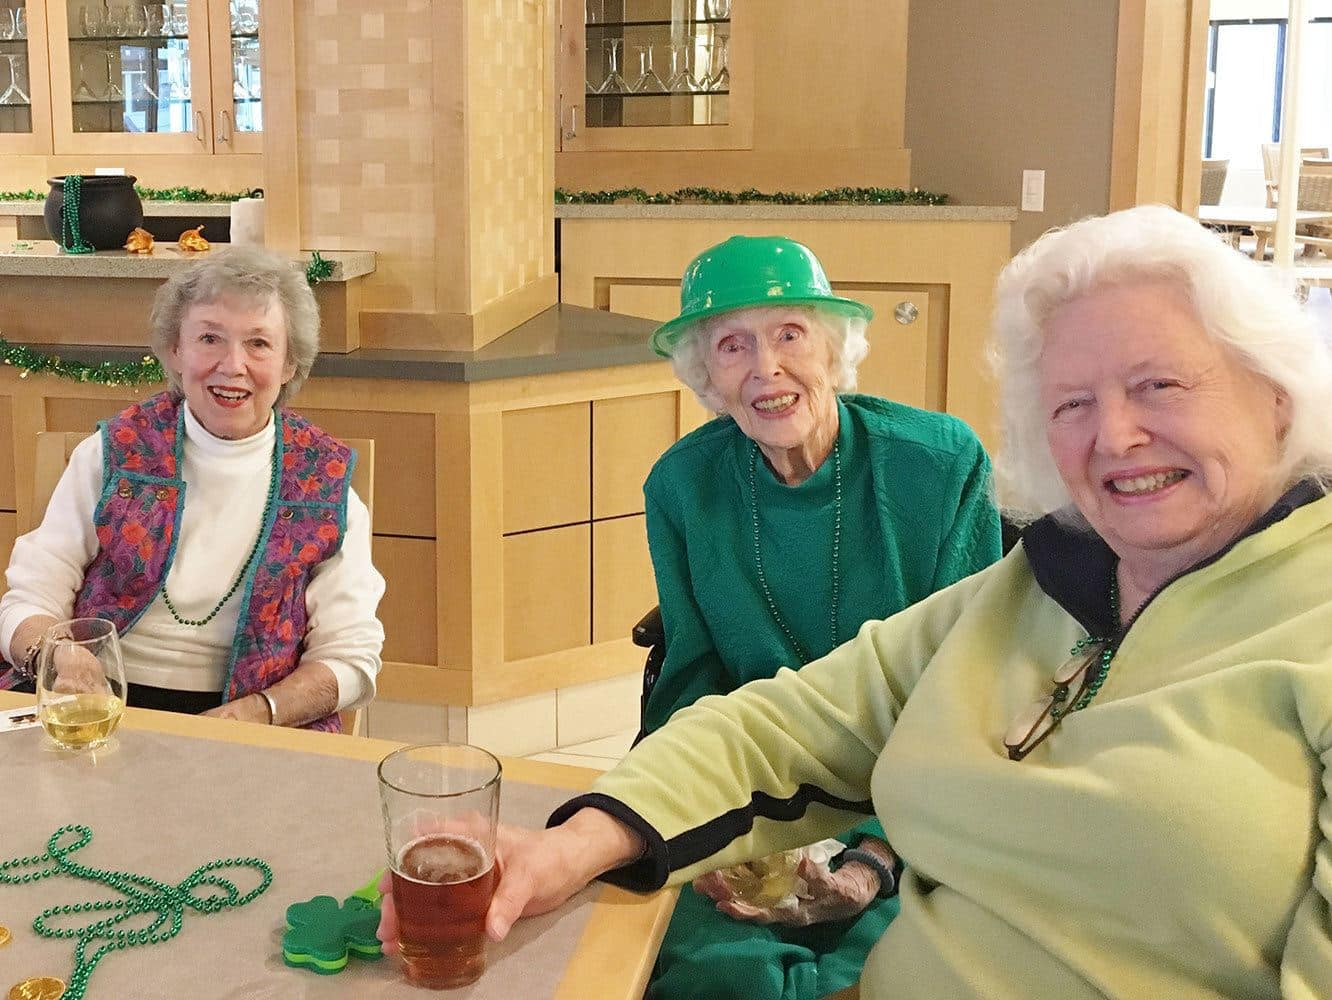 Ladies smiling at a holiday gathering